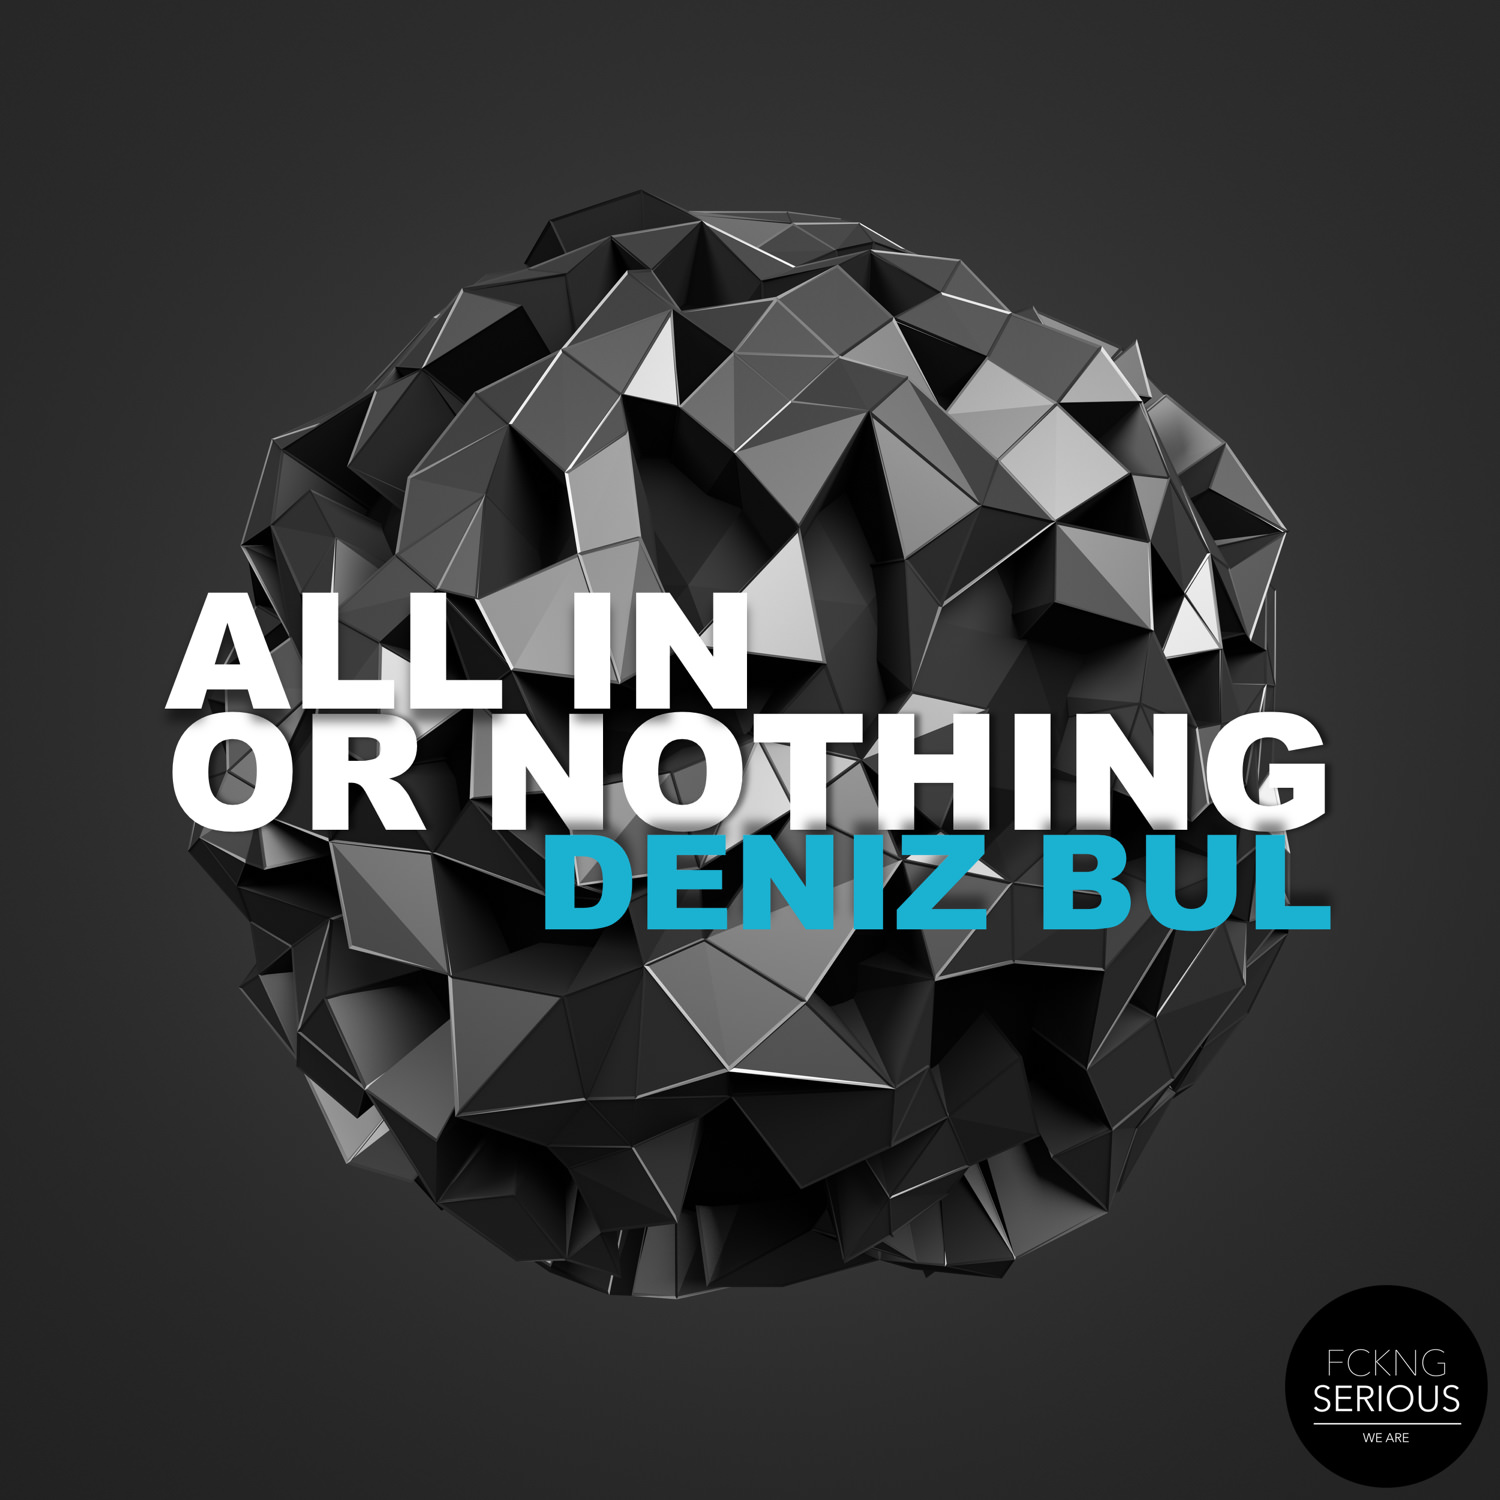 ALL IN OR NOTHING - DENIZ BULDeniz Bul is still a newcomer but already did a really massive remix from